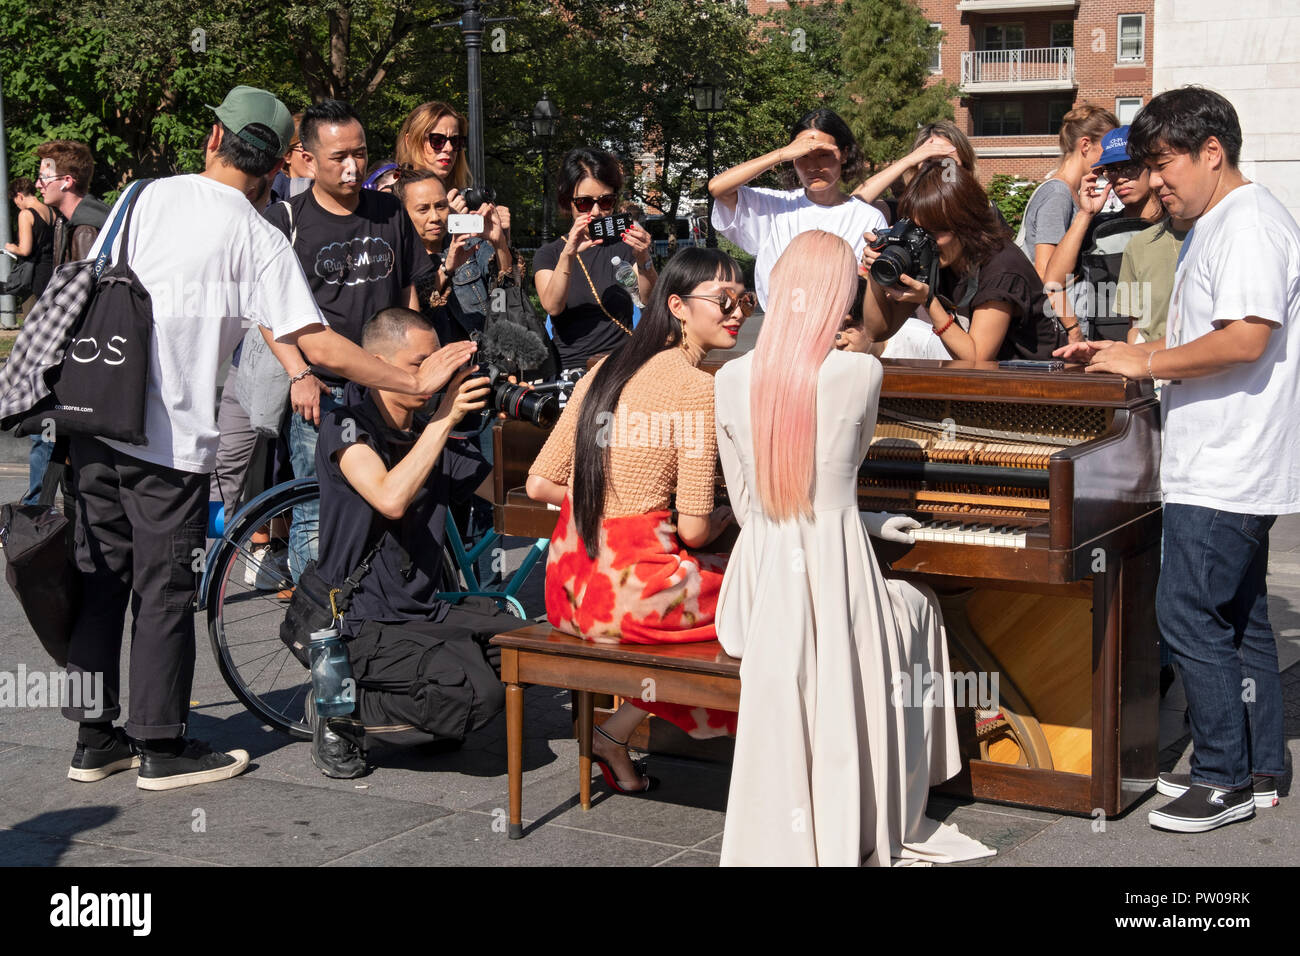 Two beautiful slender Japanese models, their photographers, entourage & onlookers in Washington Square Park in Greenwich Village, New York City. - Stock Image